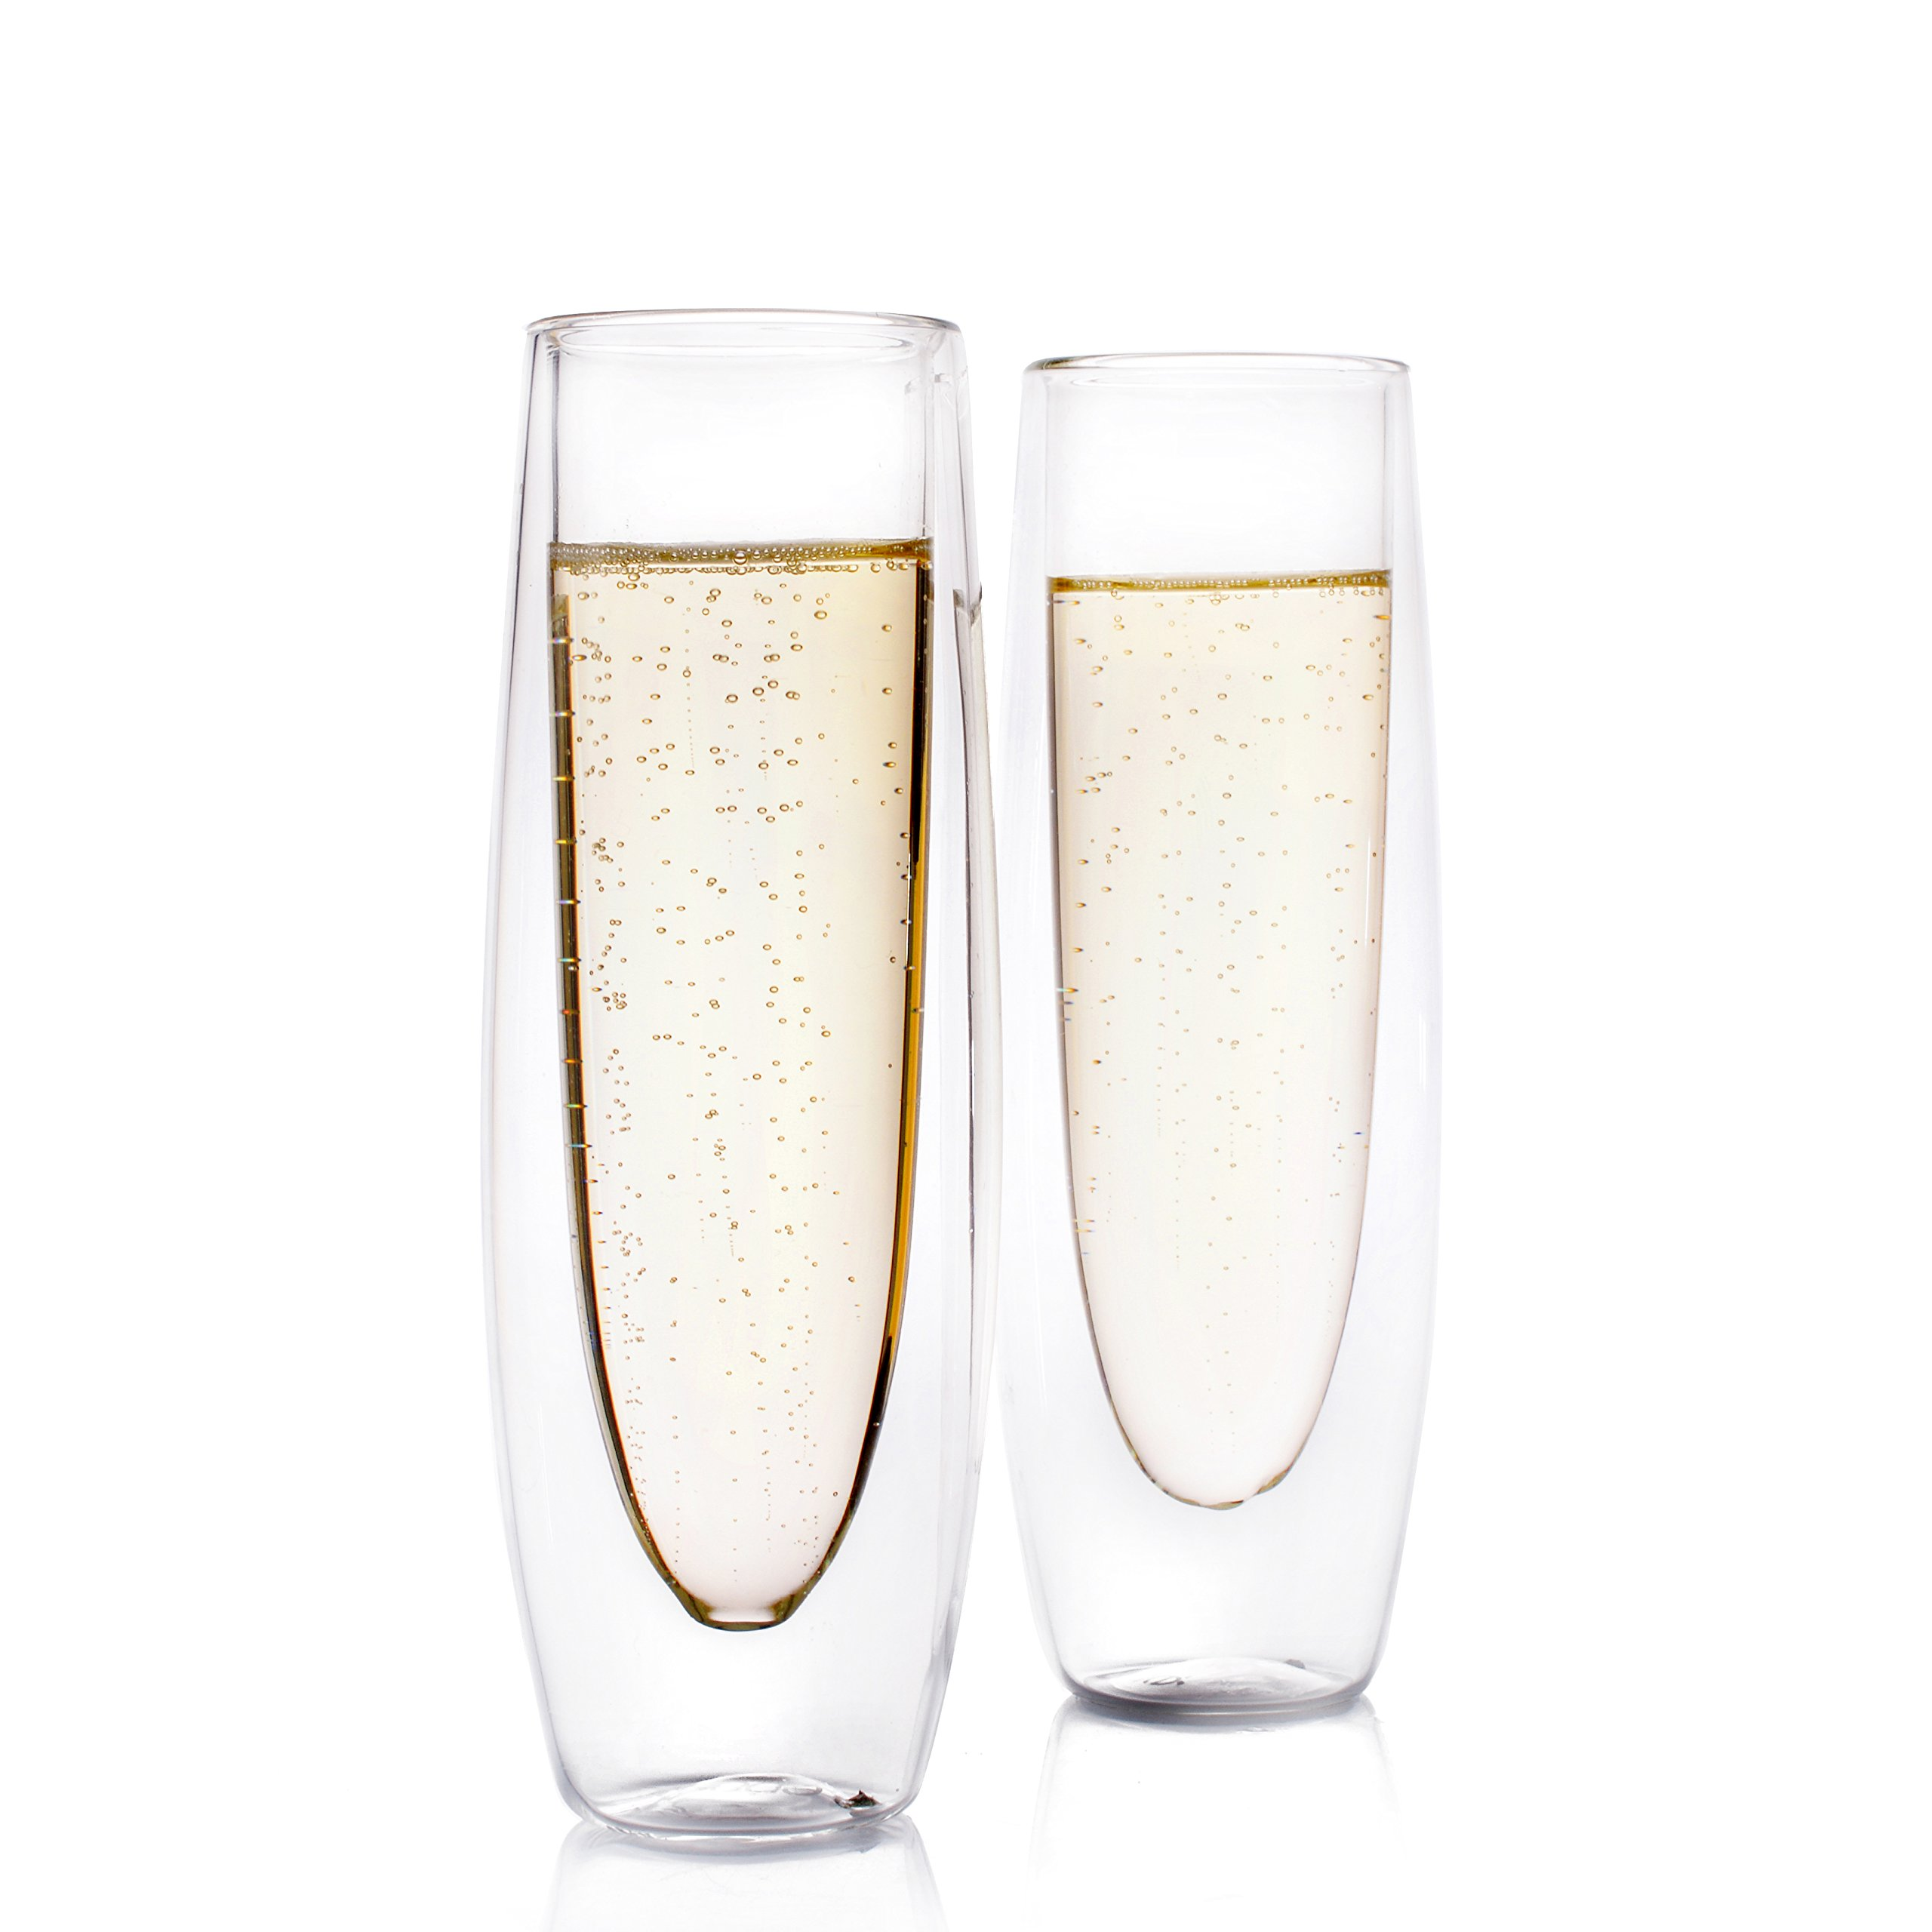 Details About Epare Champagne Flutes Insulated Stemless Glass Set  Ml Flute